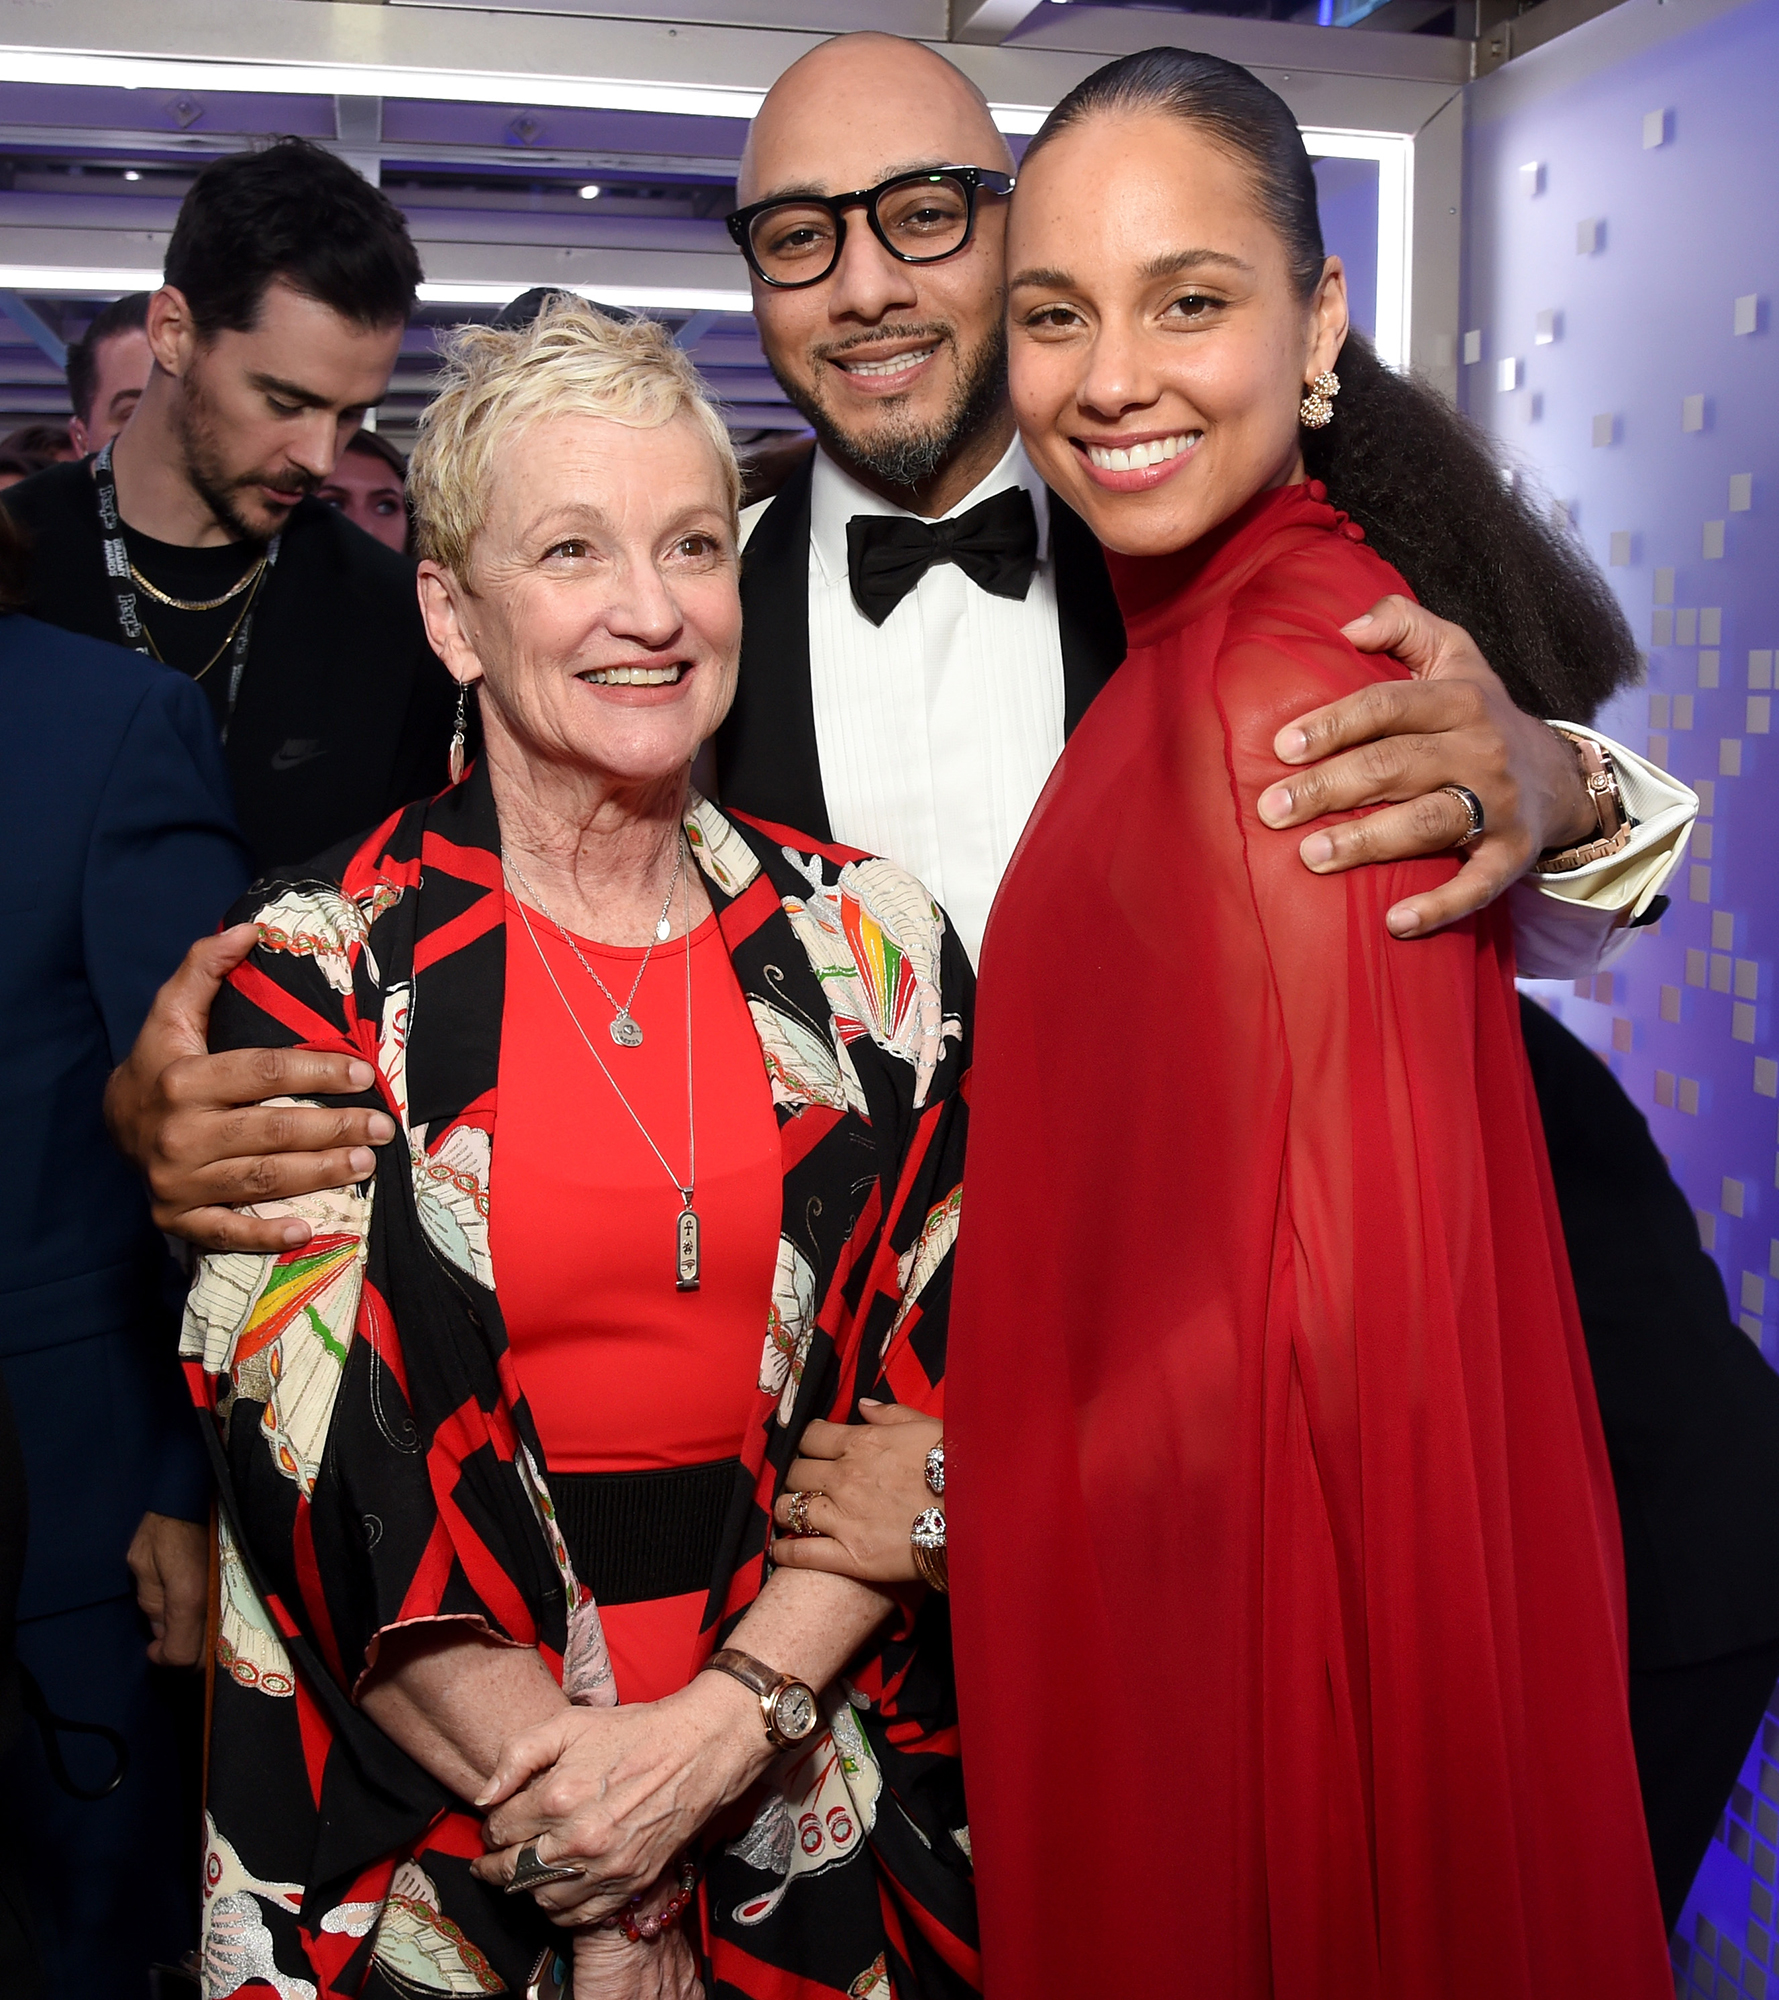 Alicia Keys Terria Joseph STARS BRINGING FAMILY TO GRAMMYS 2019 - The Grammys host and her husband, Swiss Beatz, posed for a pic with Key's mom at the awards show.